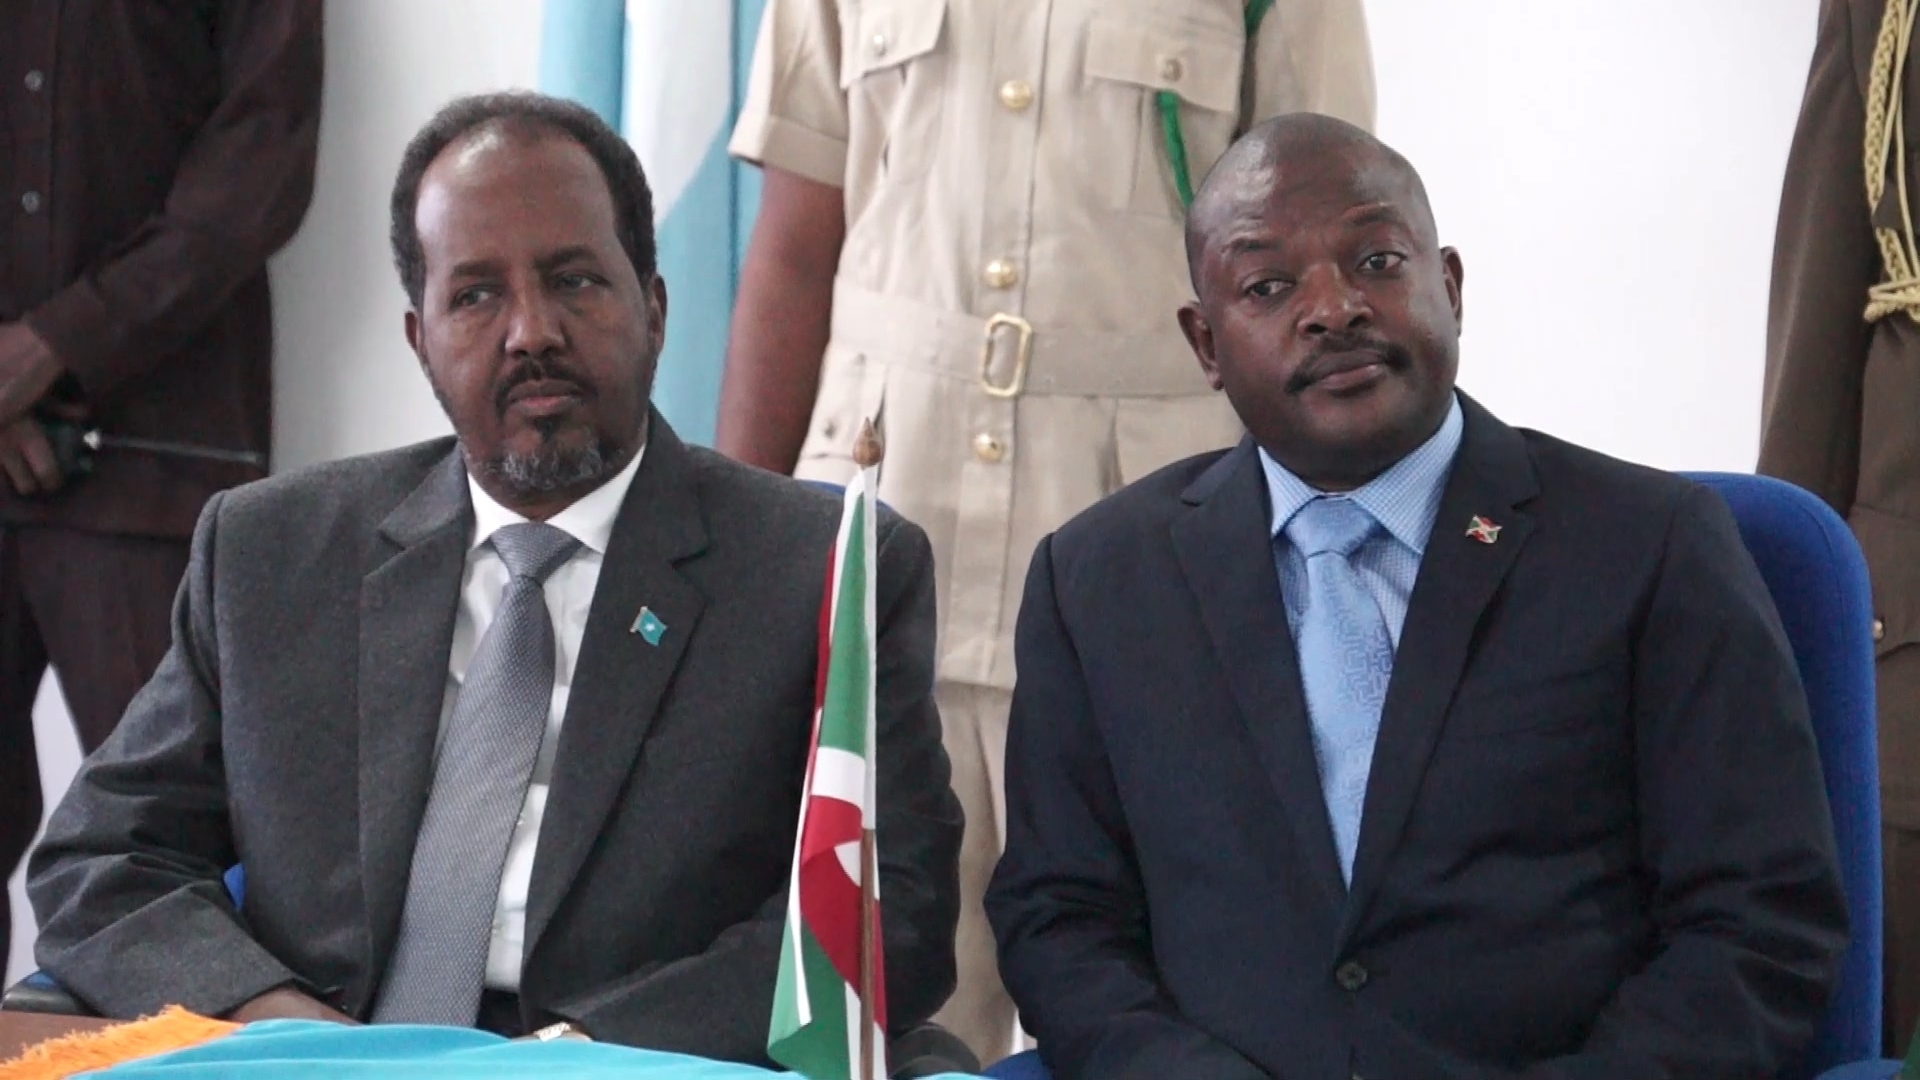 Selected frame from video story SOMALIA / BURUNDI PRESIDENT NKURUNZIZA